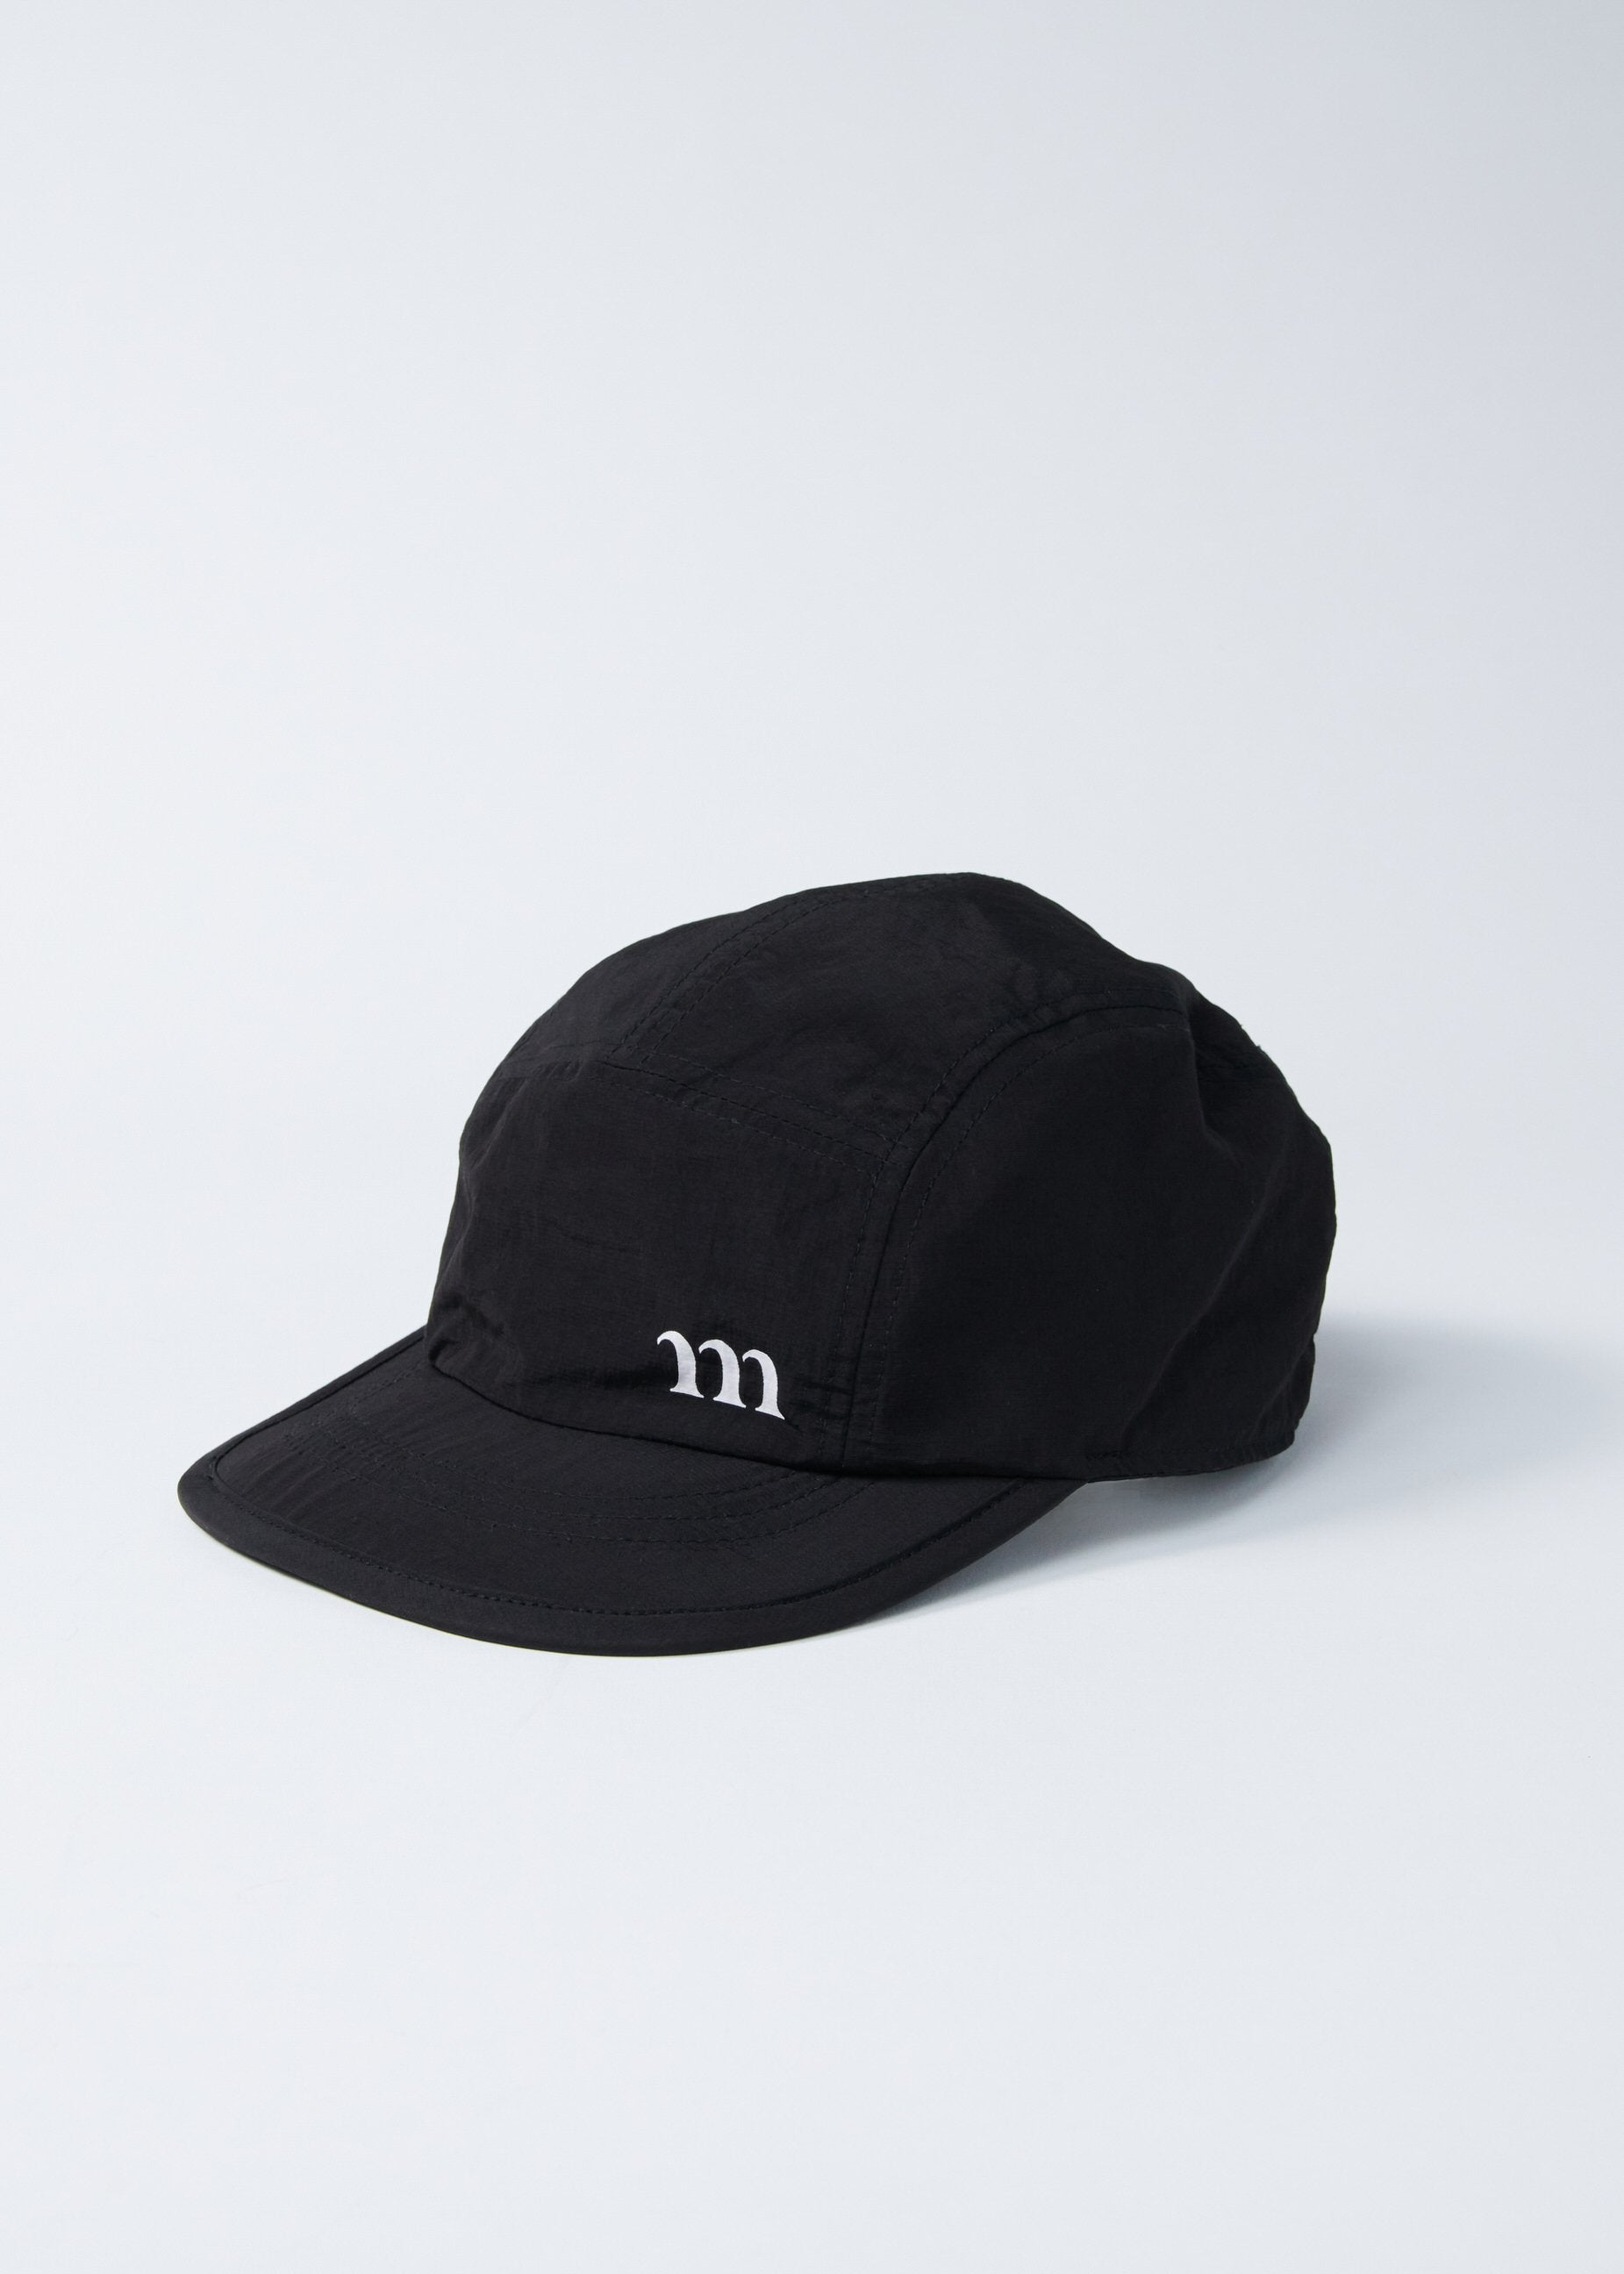 """m"" LIGHT 5 PANELS CAP <span>【予約販売】</span> - muracodesigns"